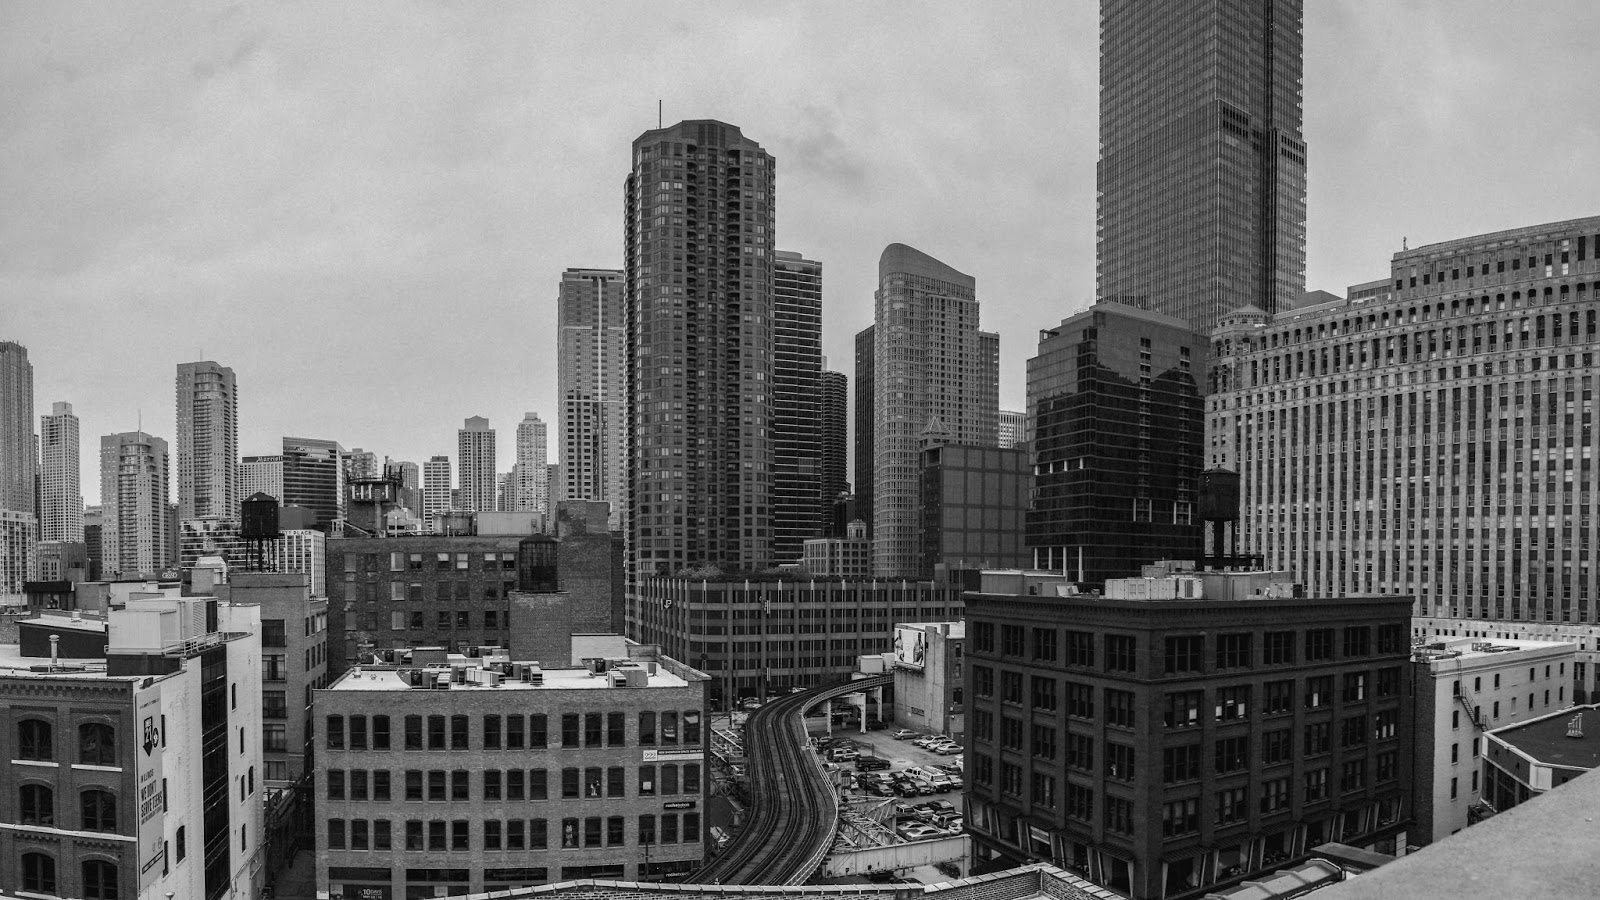 Black and White Chicago Pano